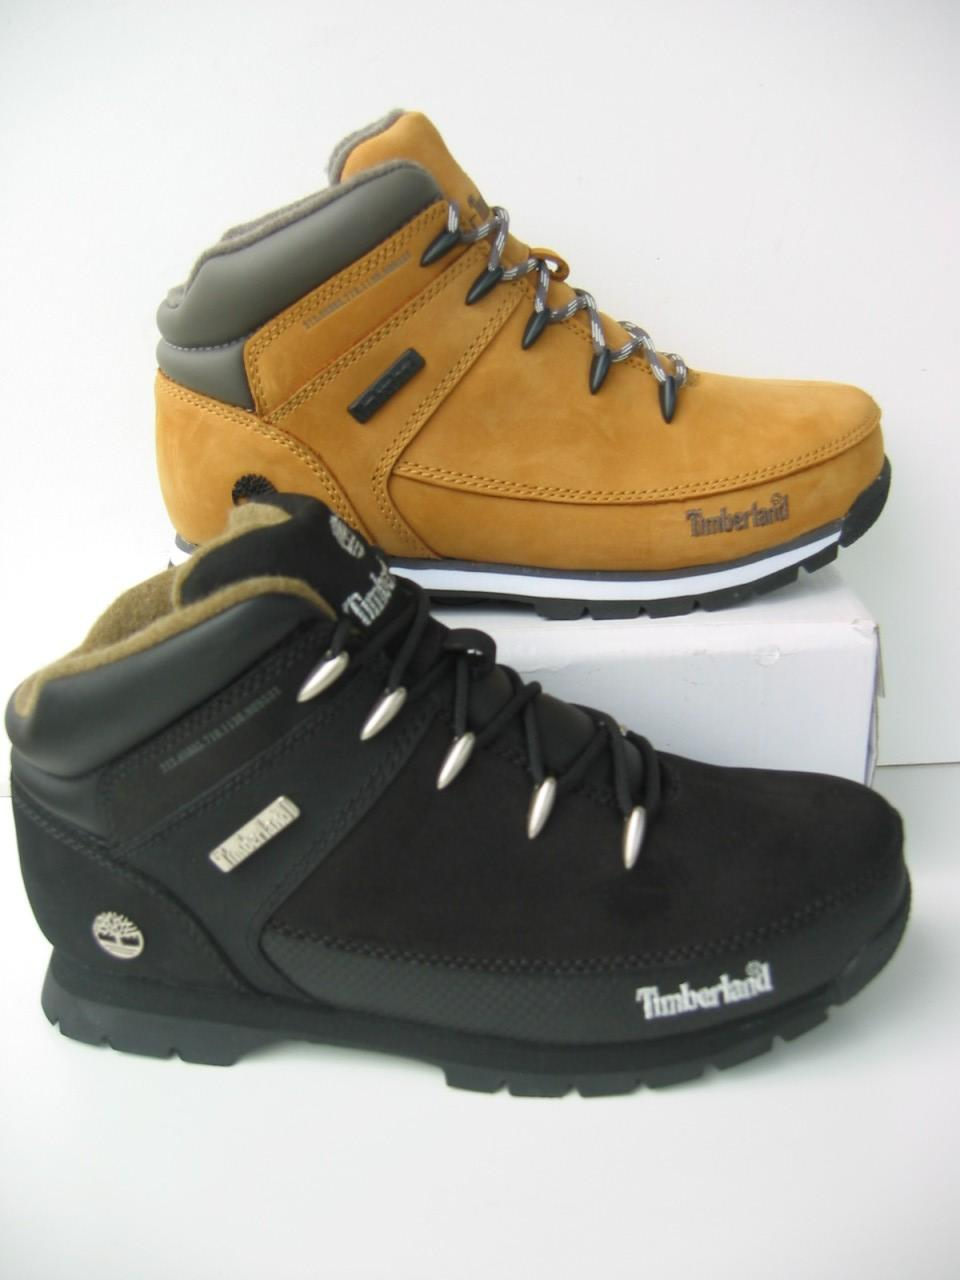 timberland junior size 6.5 boot